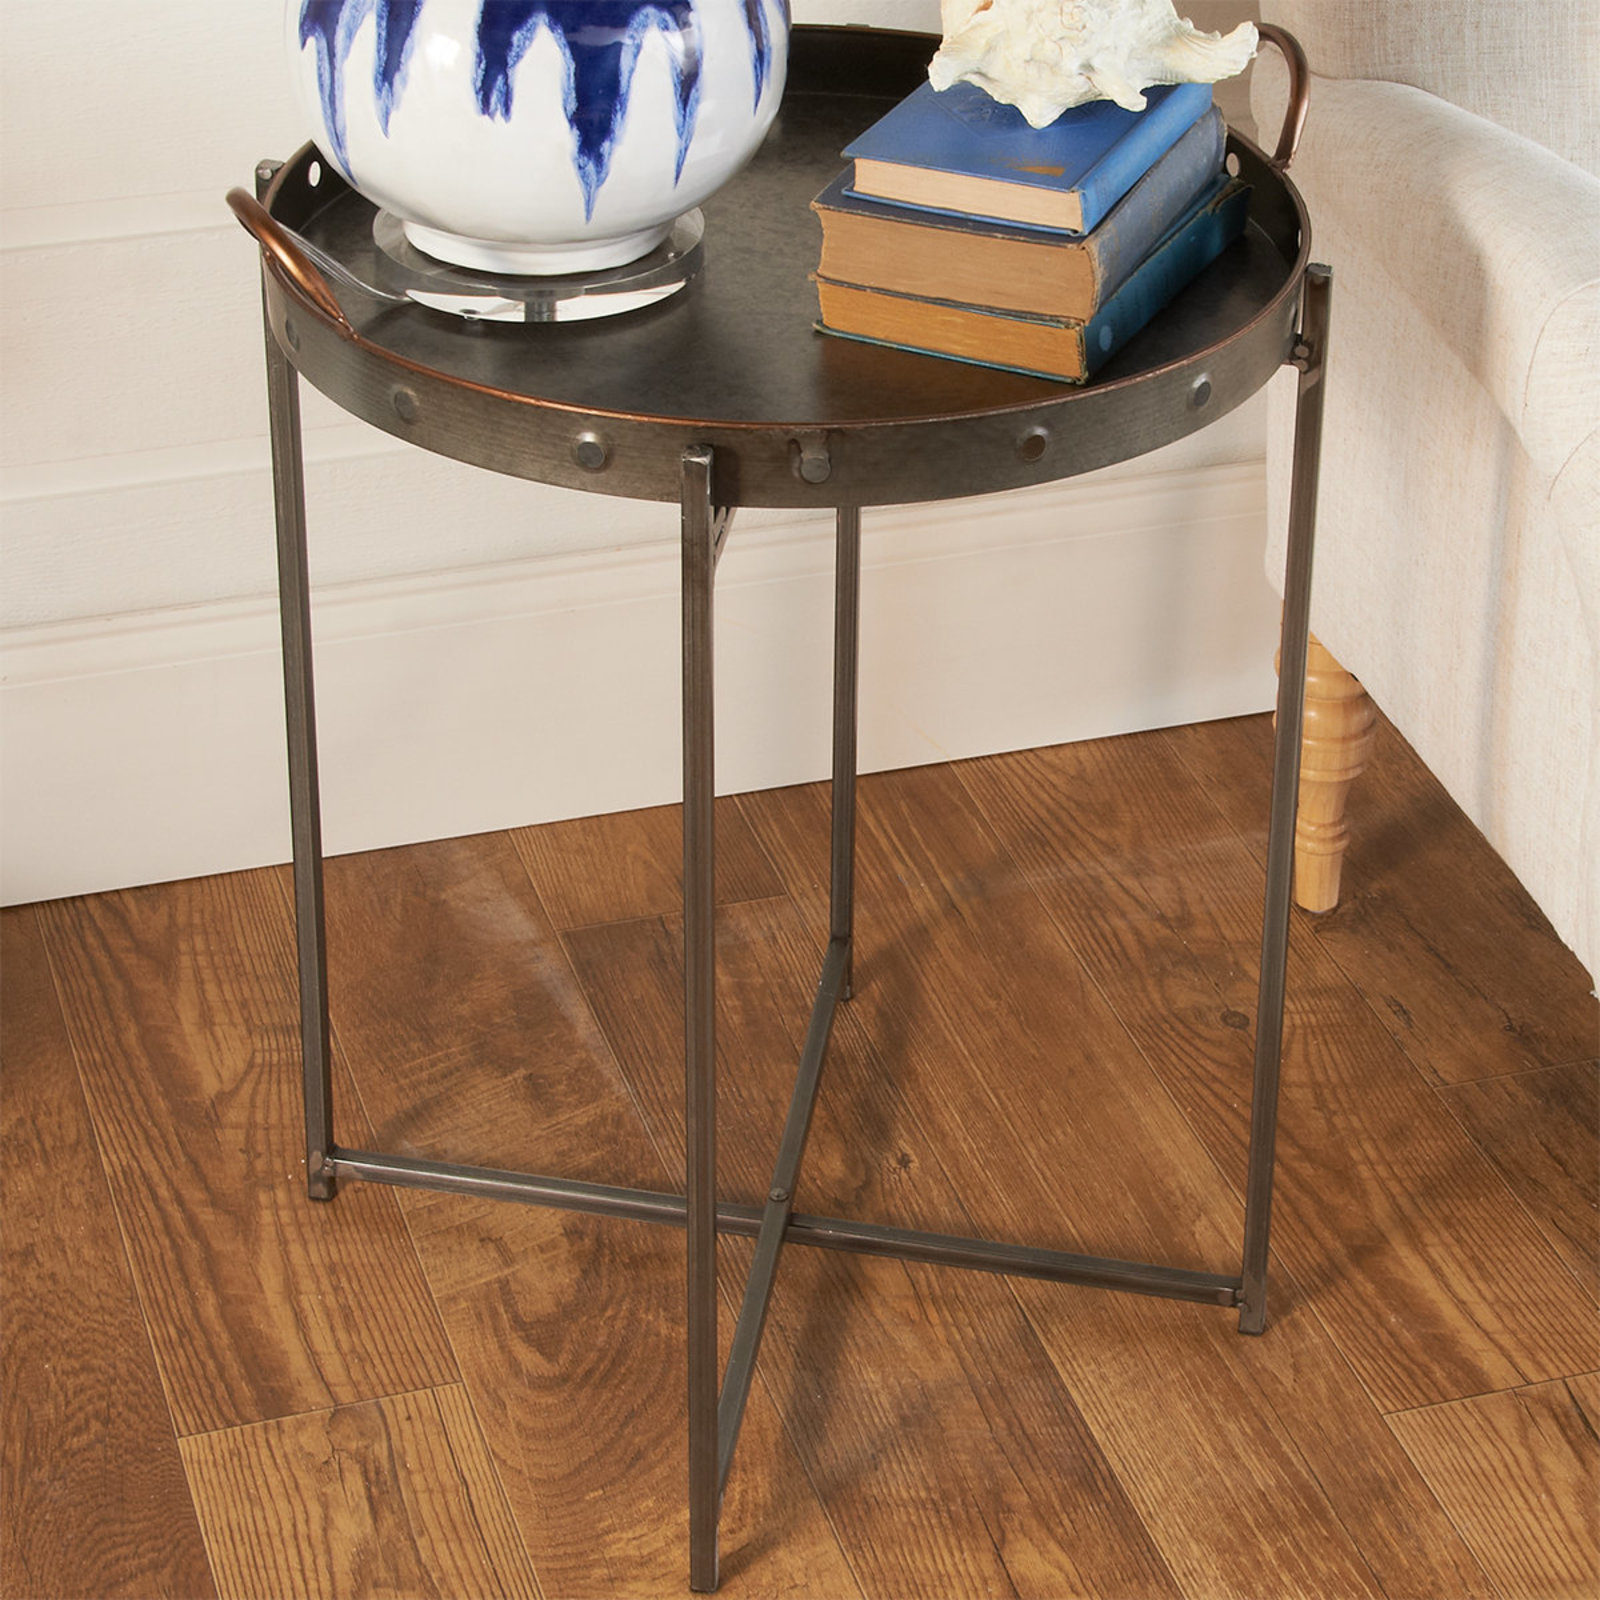 galvanized tray top accent table shades light bronze antique side styles low console cabinet black marble set area rugs lime green coffee battery powered led lights reclaimed wood